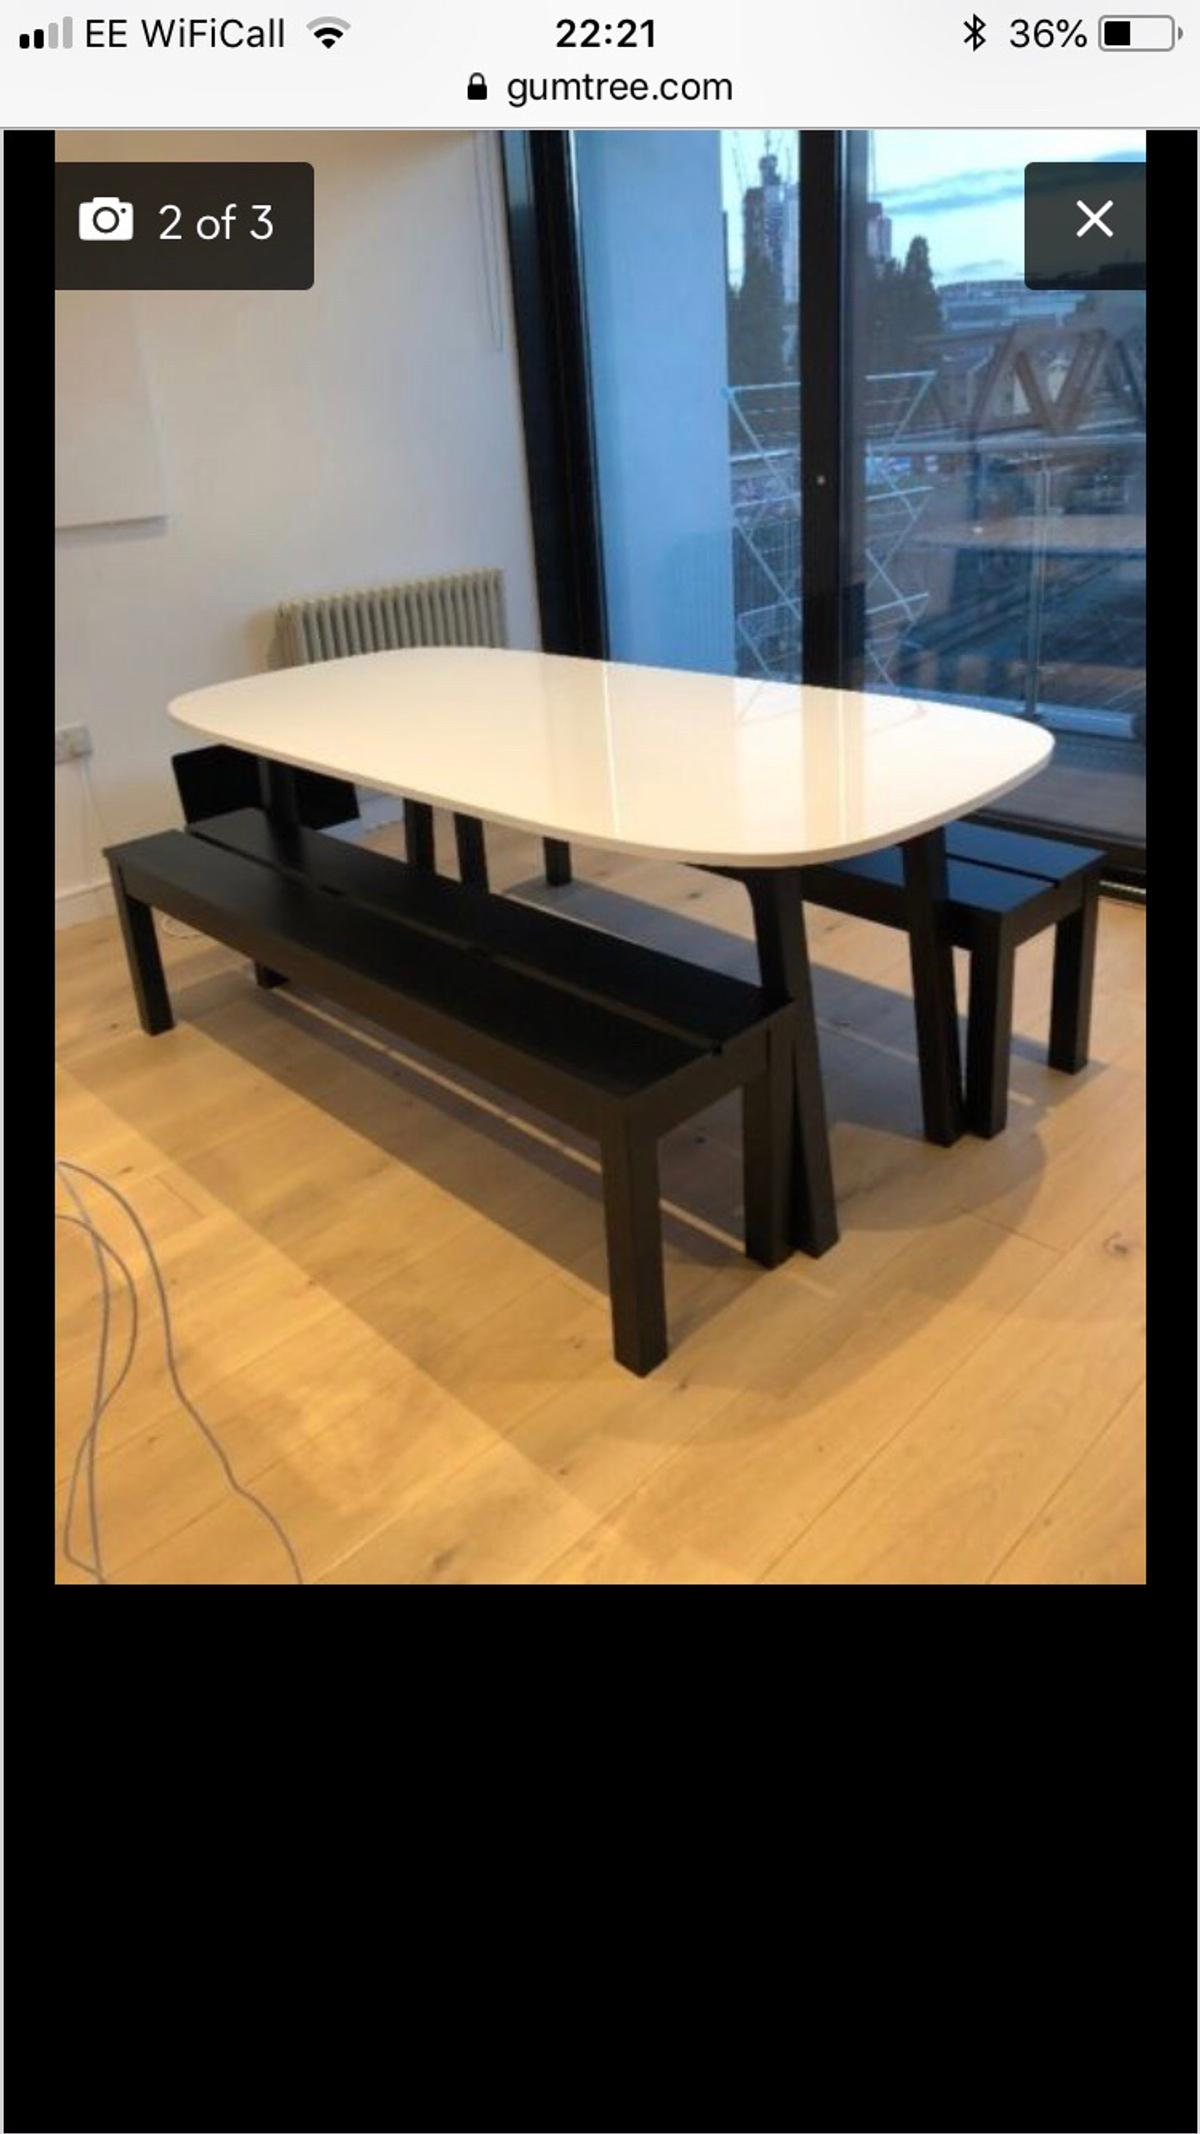 Swell Ikea Dining Table And Benches 6 Person Ocoug Best Dining Table And Chair Ideas Images Ocougorg